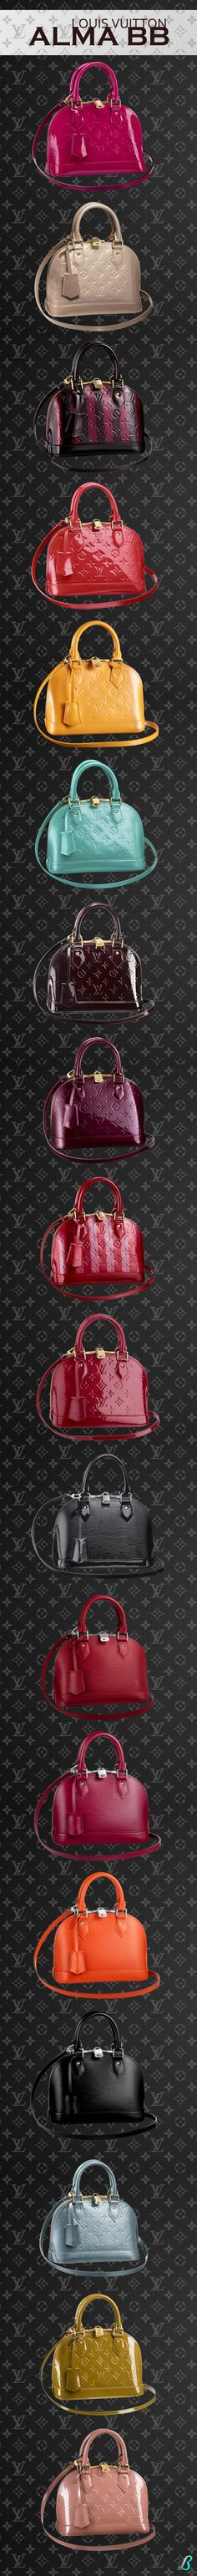 ~Louis Vuitton Alma BB Collection is a reinterpretation of one of LV's icons   House of Beccaria